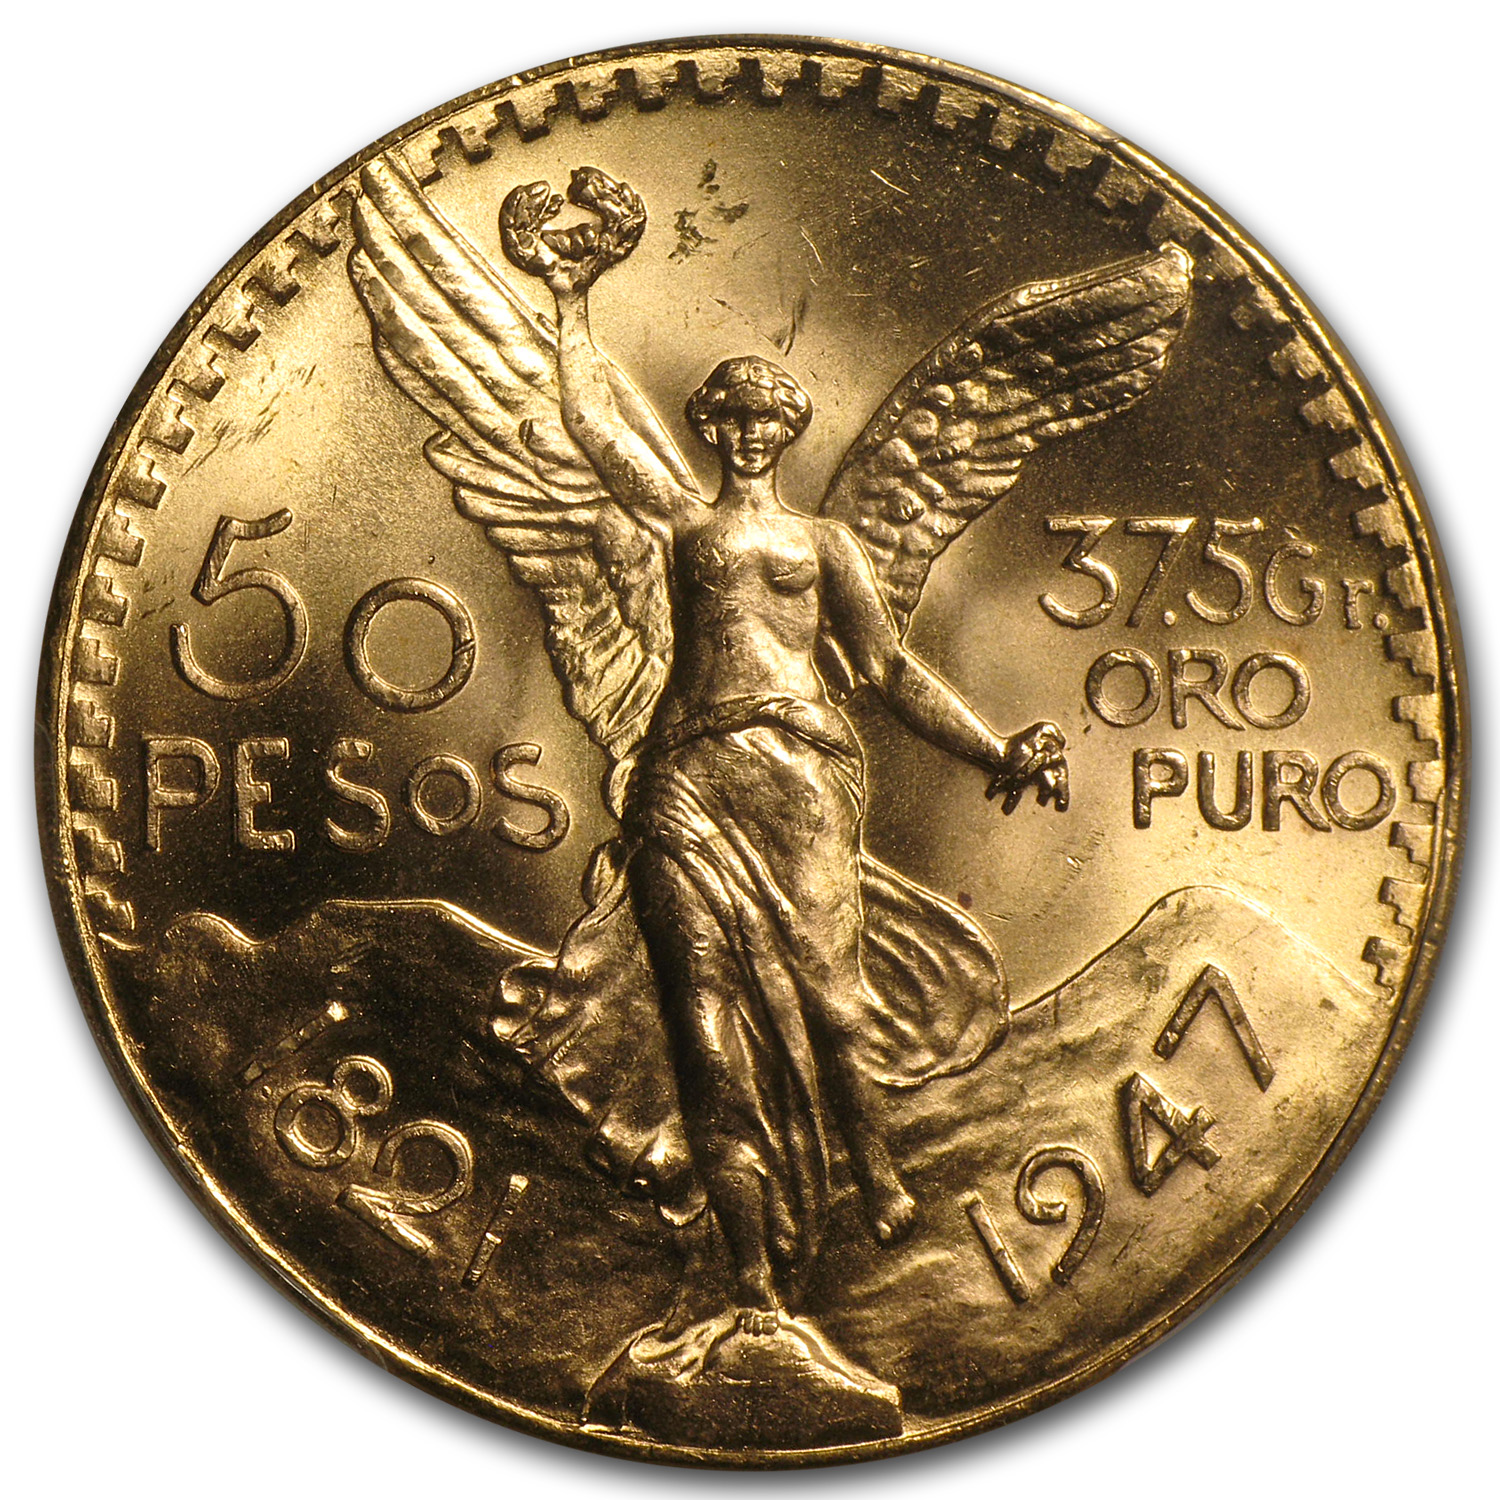 Mexico 1947 50 Pesos Gold Coin - MS-65 PCGS (Secure Plus!)